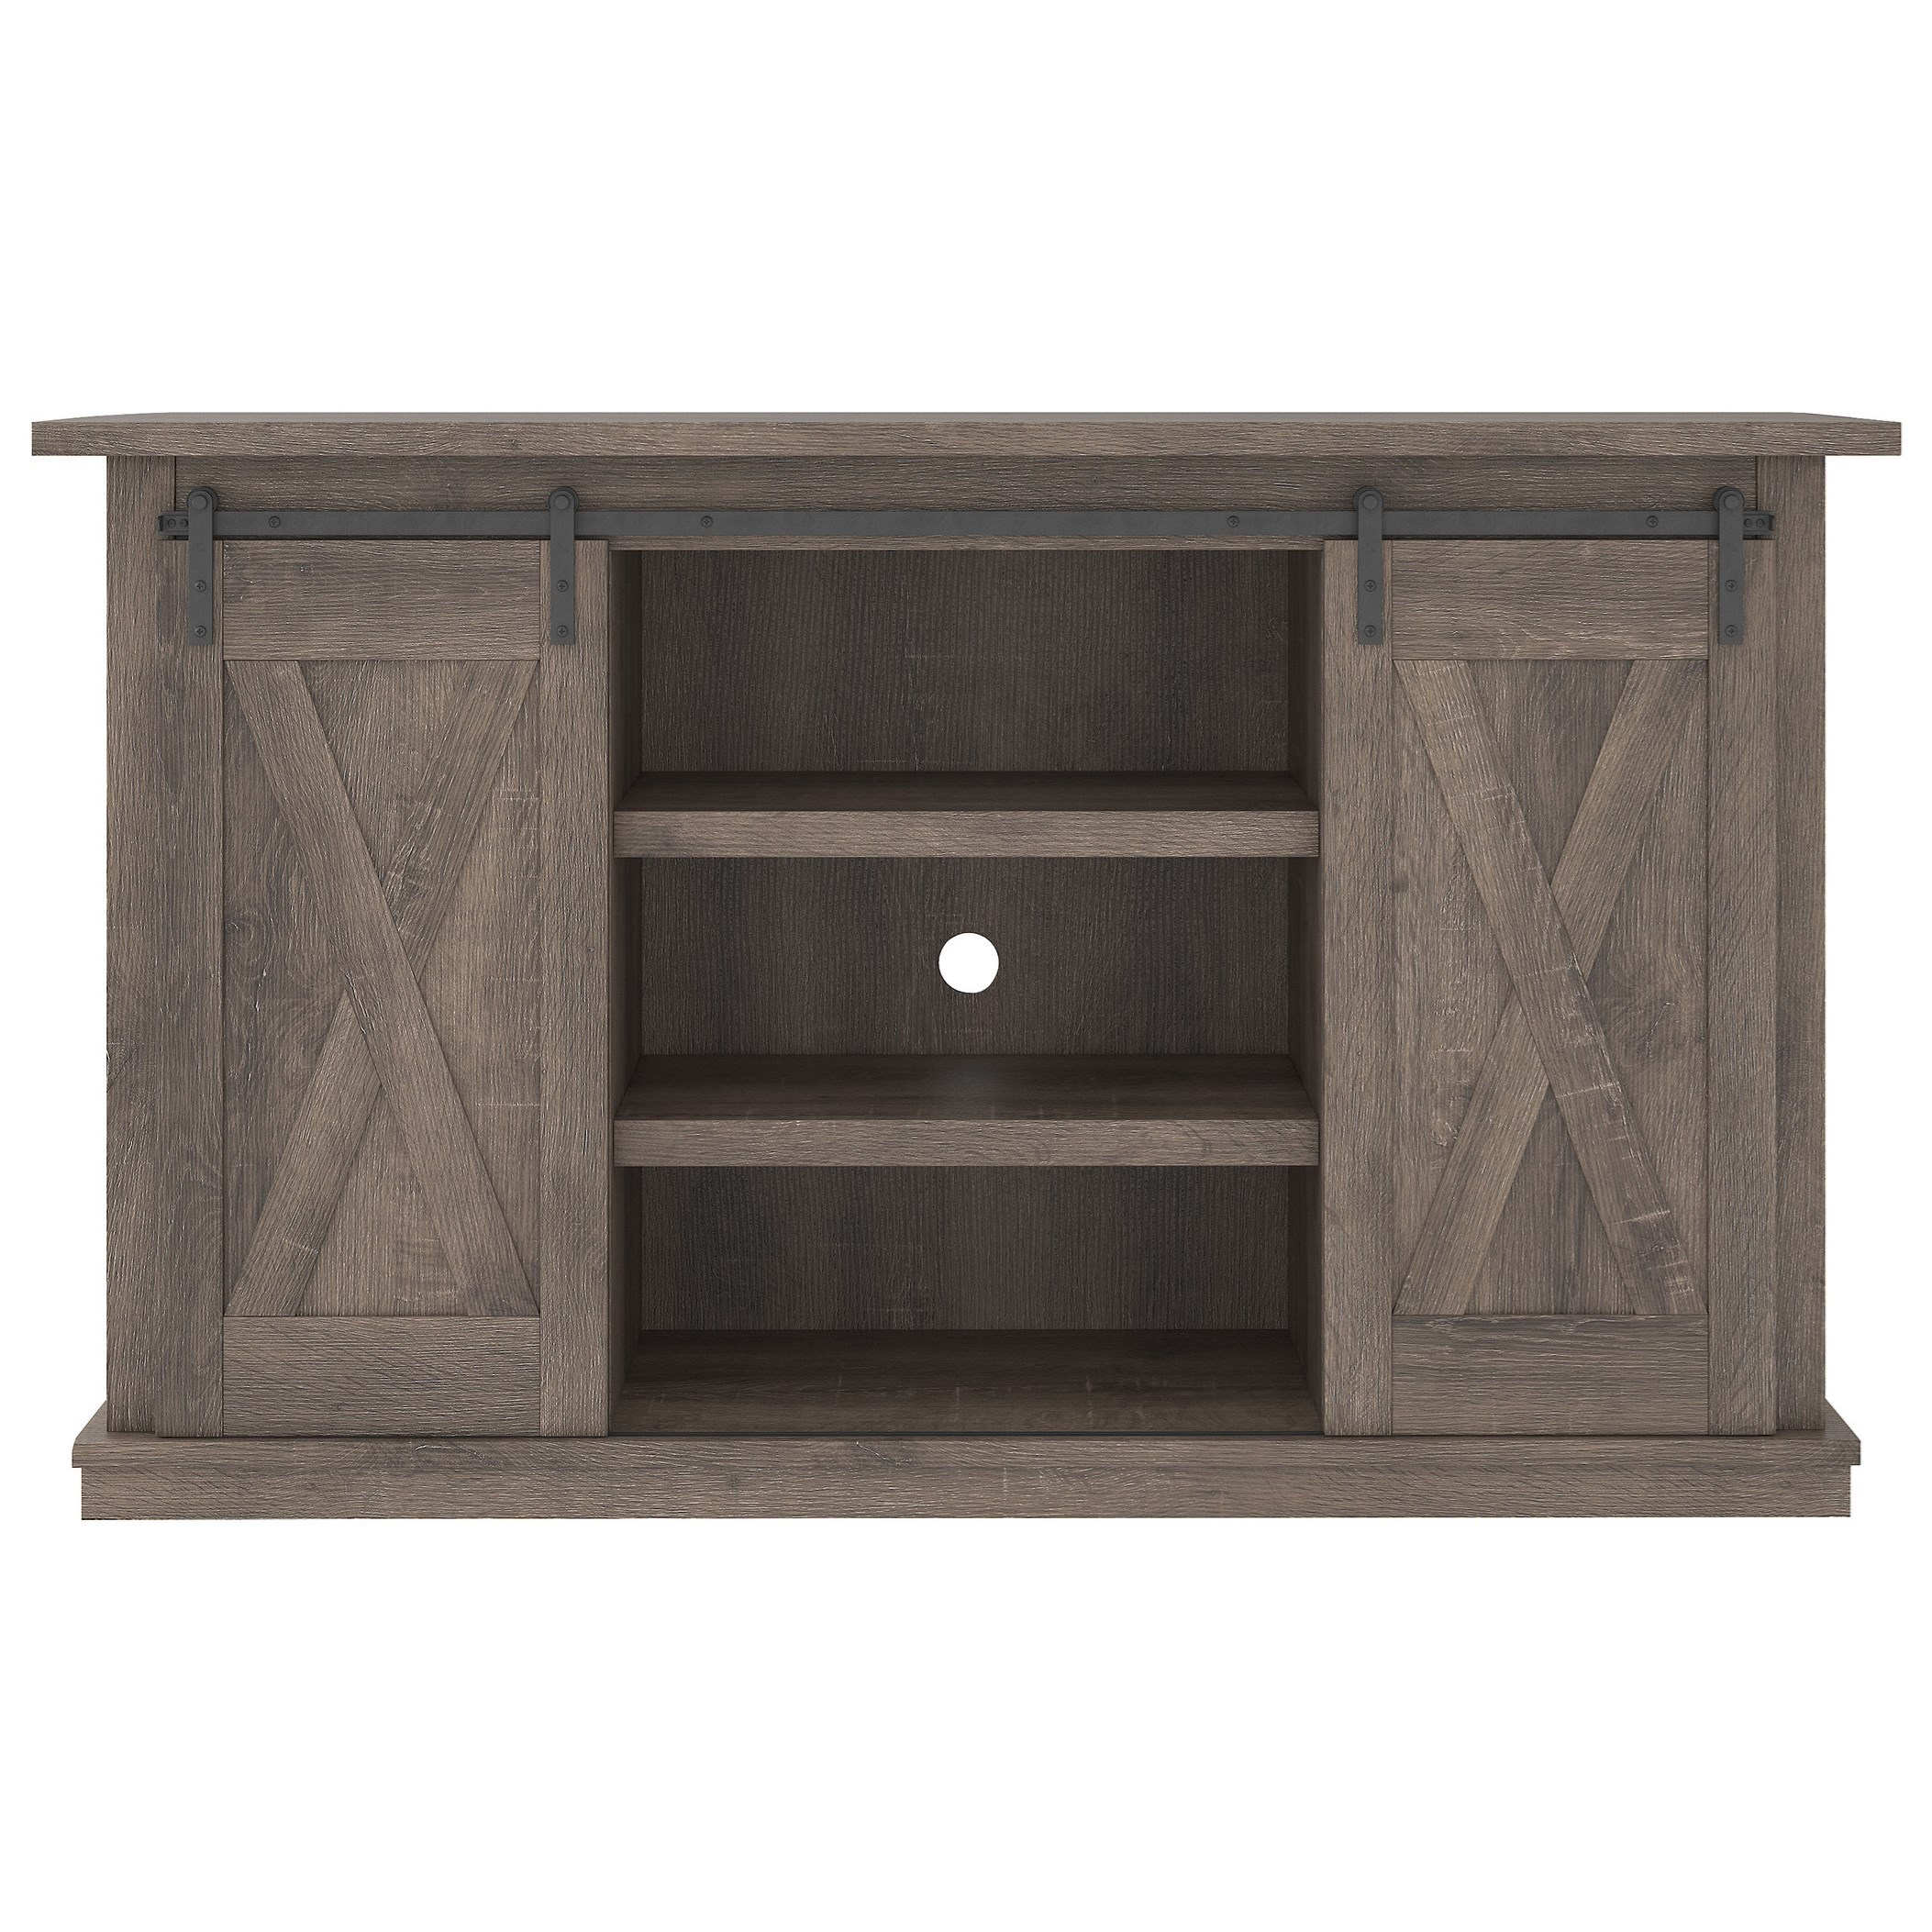 Arlenbry Medium TV Stand by Signature Design by Ashley at Lapeer Furniture & Mattress Center